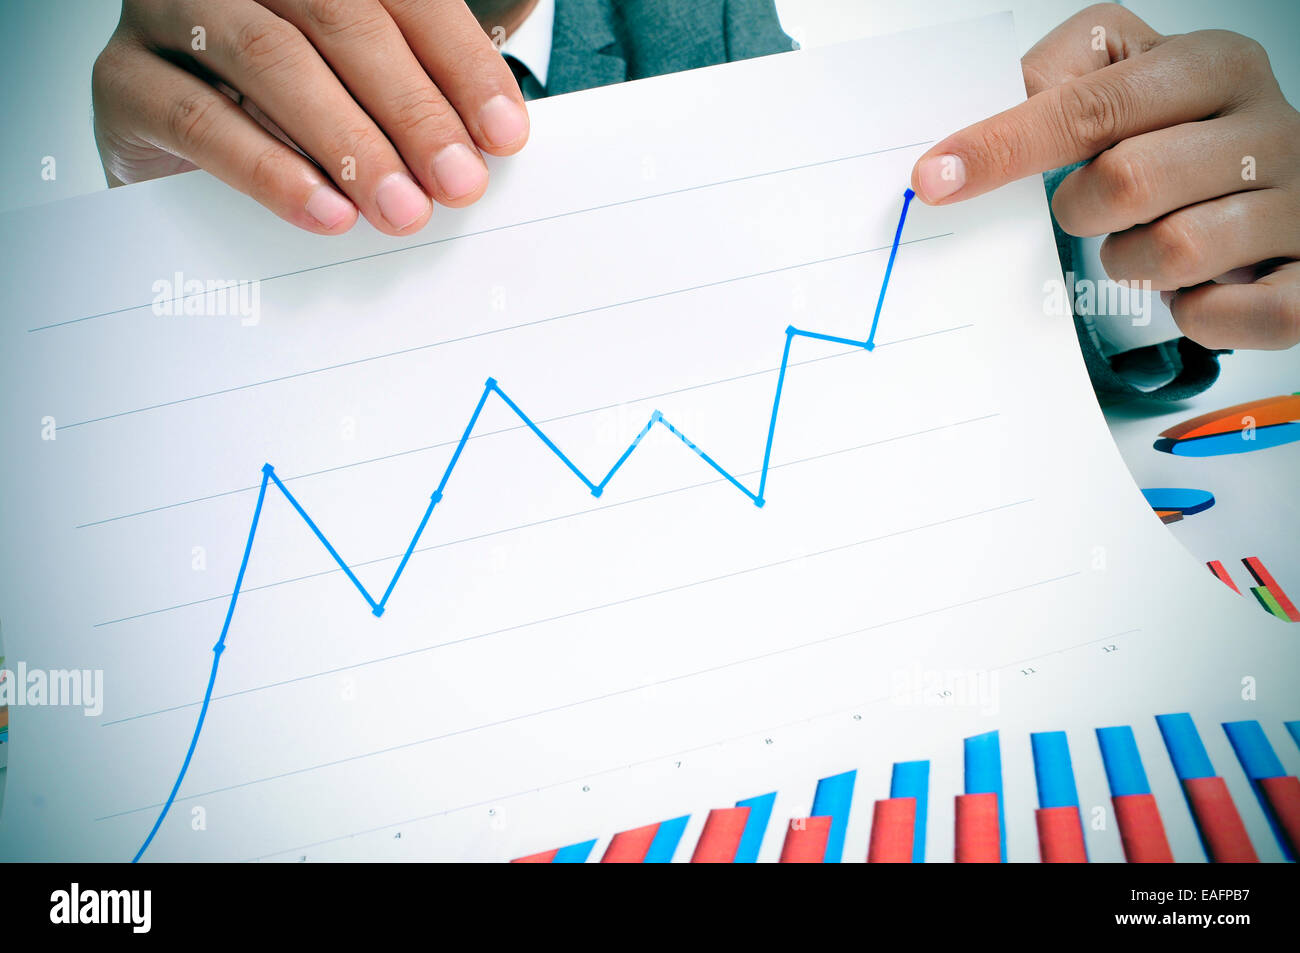 man wearing a suit sitting in a table showing a graph of economic growth - Stock Image